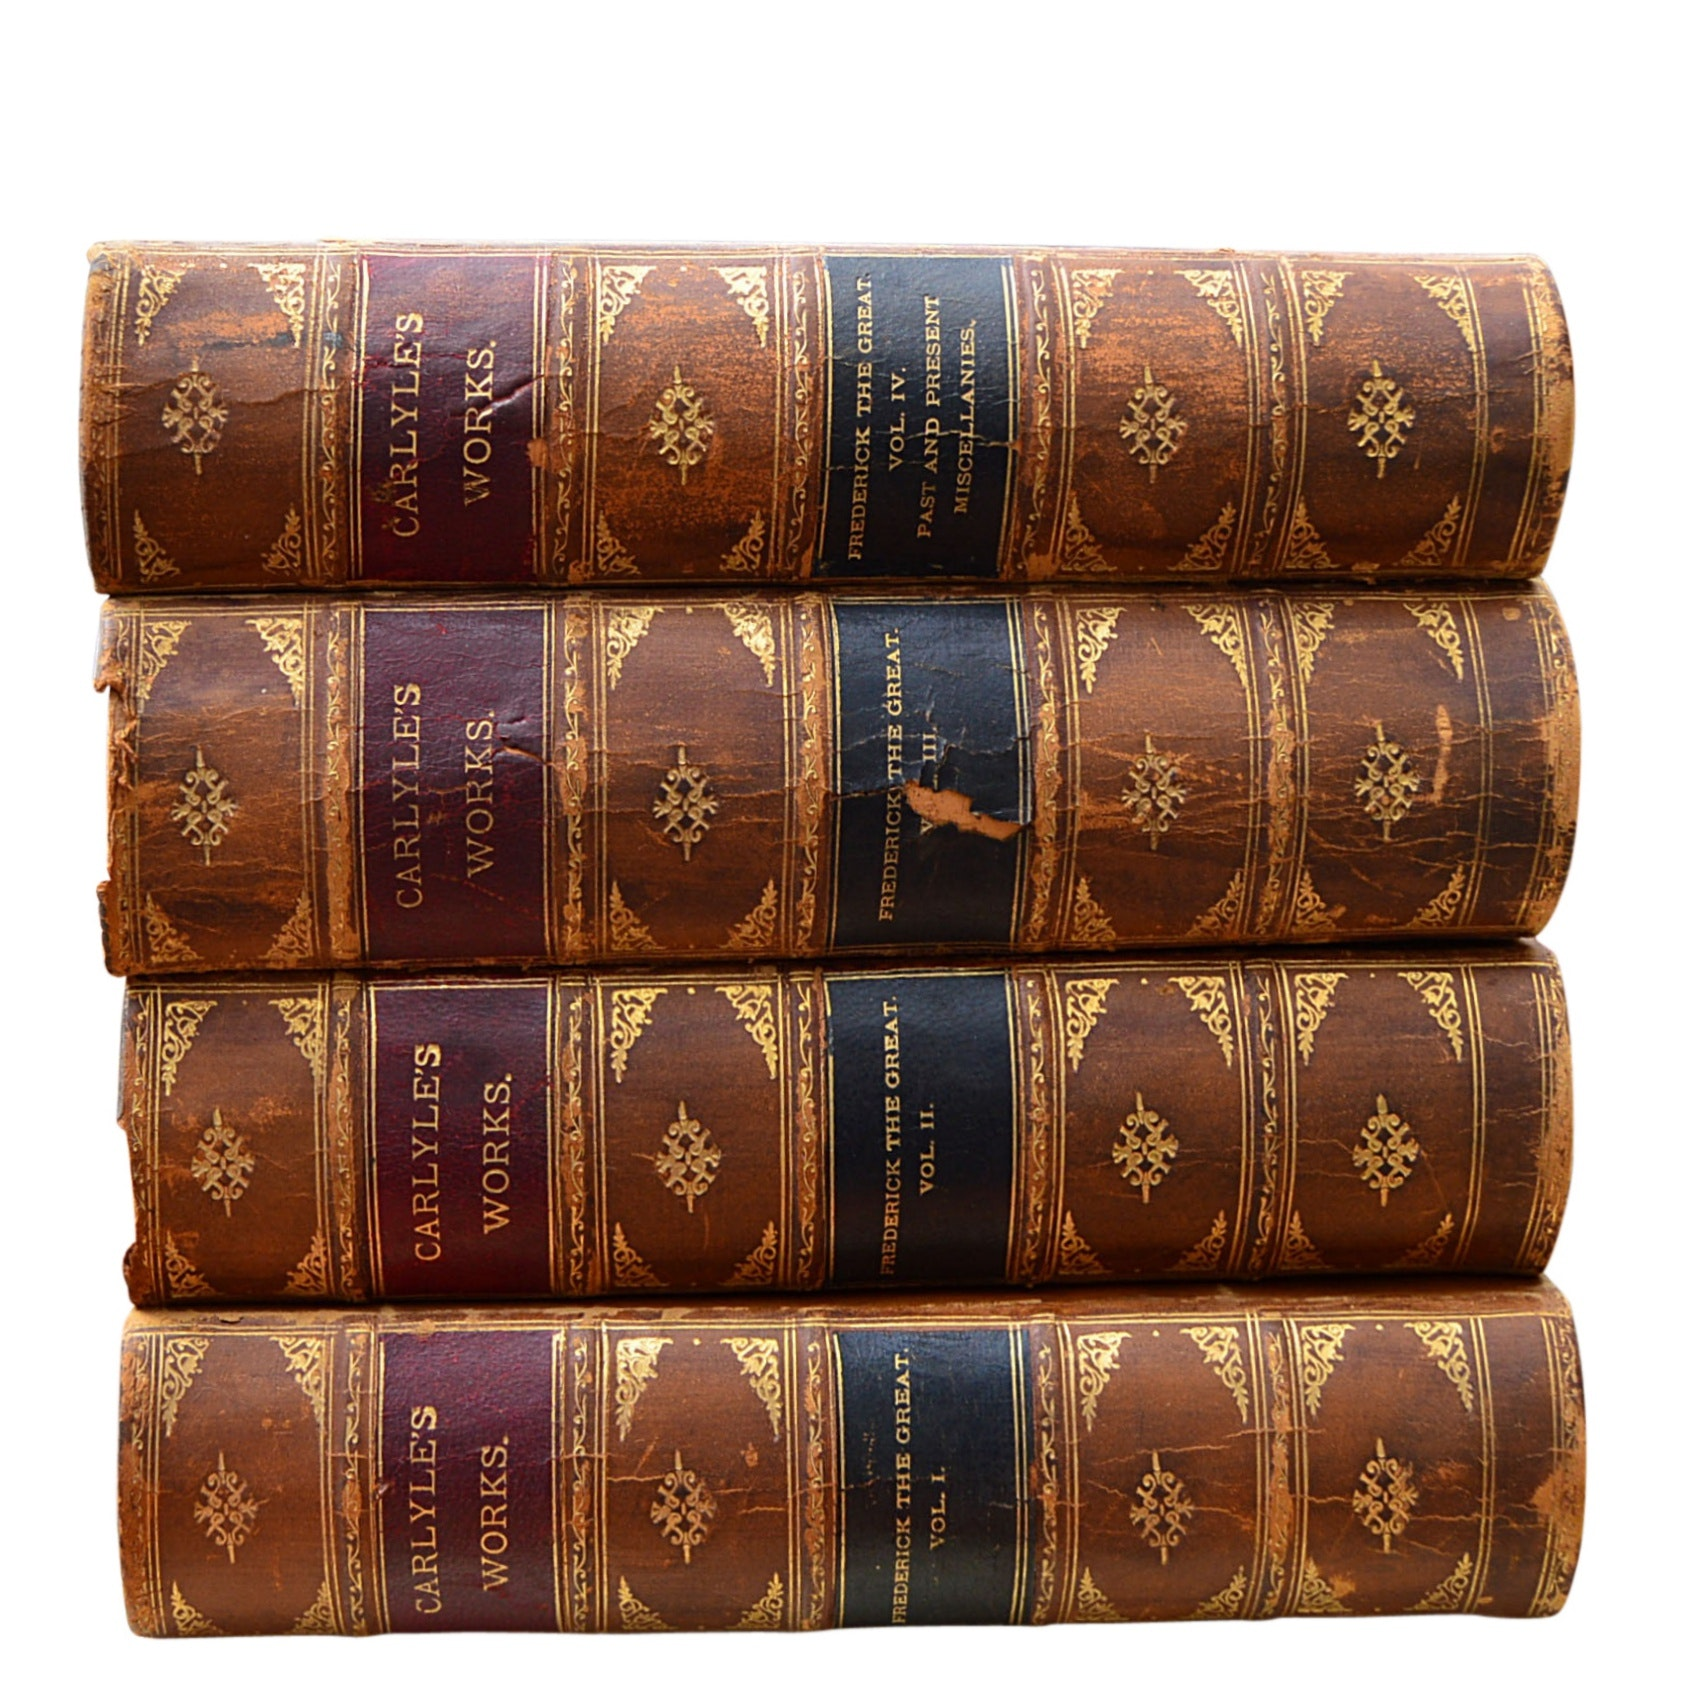 """""""Carlyle's Works"""" 4 Volume Partial Set, 19th Century"""